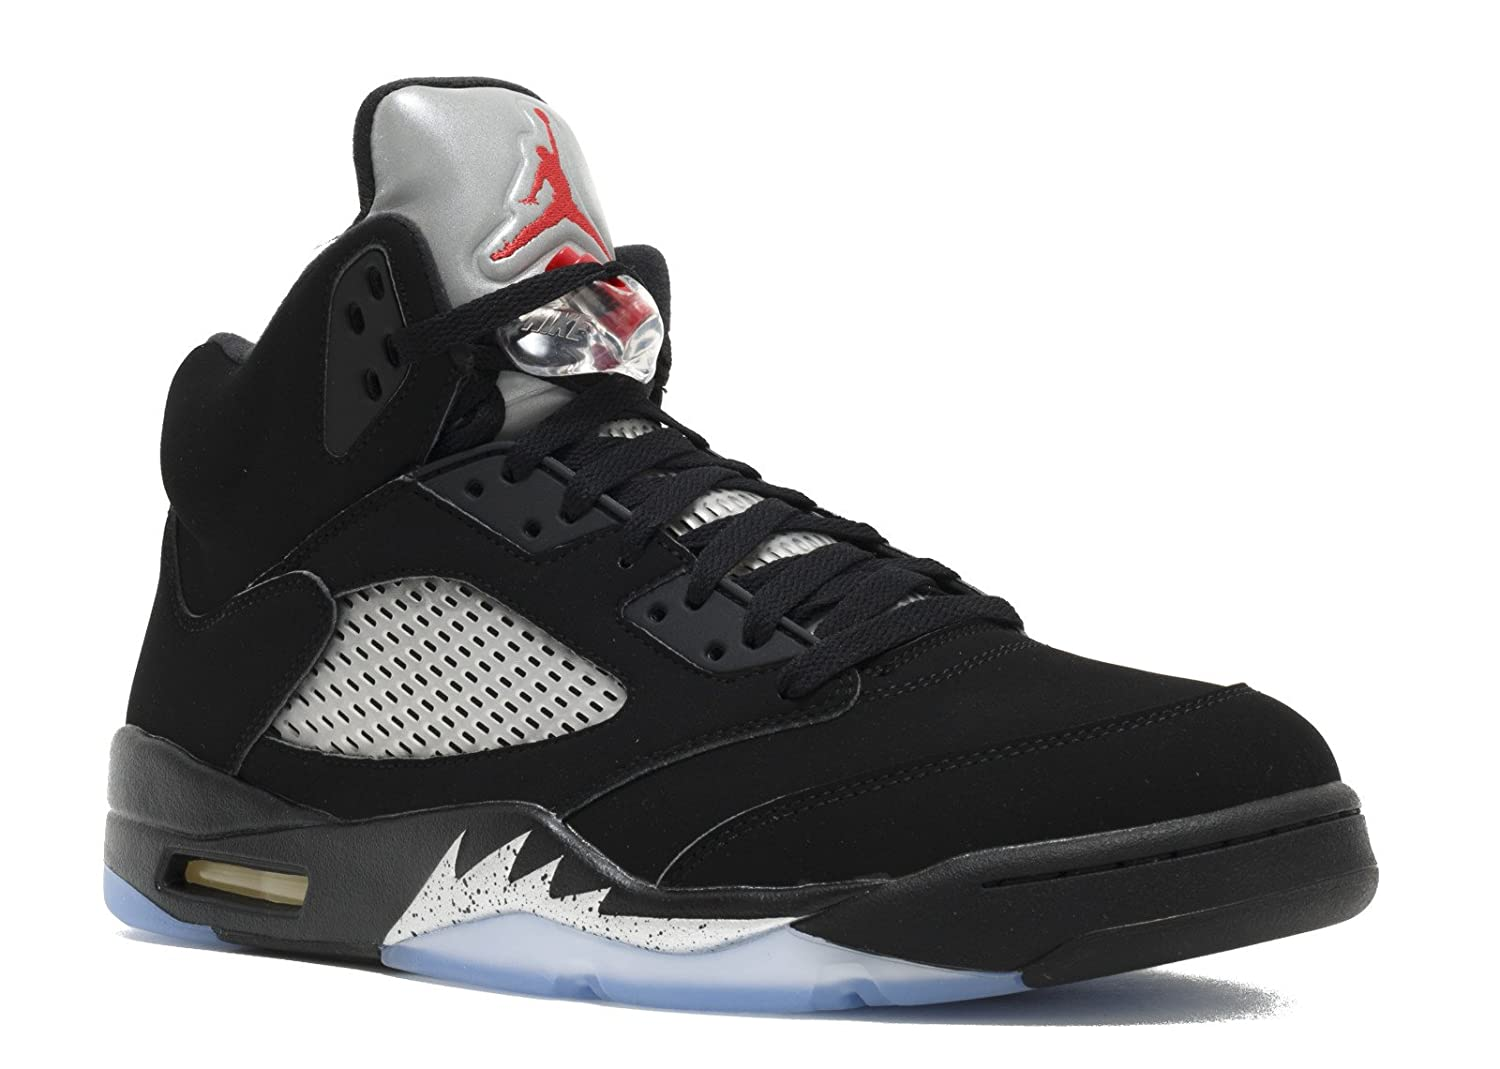 size 40 8bed0 0cd37 Amazon.com   Nike Mens AIR JORDAN 5 RETRO OG, BLACK FIRE RED-METALLIC  SILVER-WHITE, 15   Basketball